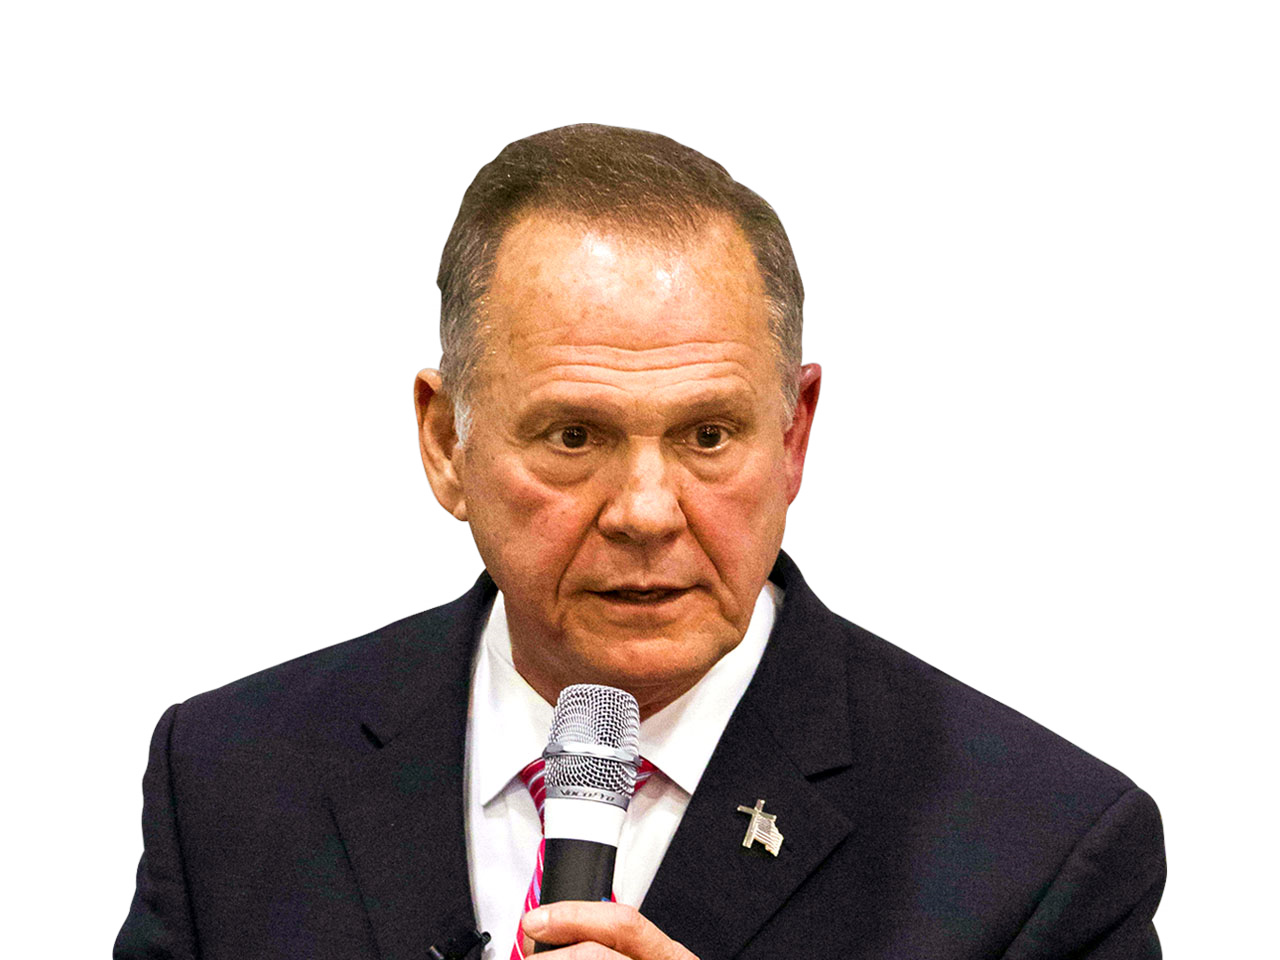 (image: MGN){ }AL.com: Sixth Moore accuser comes forward